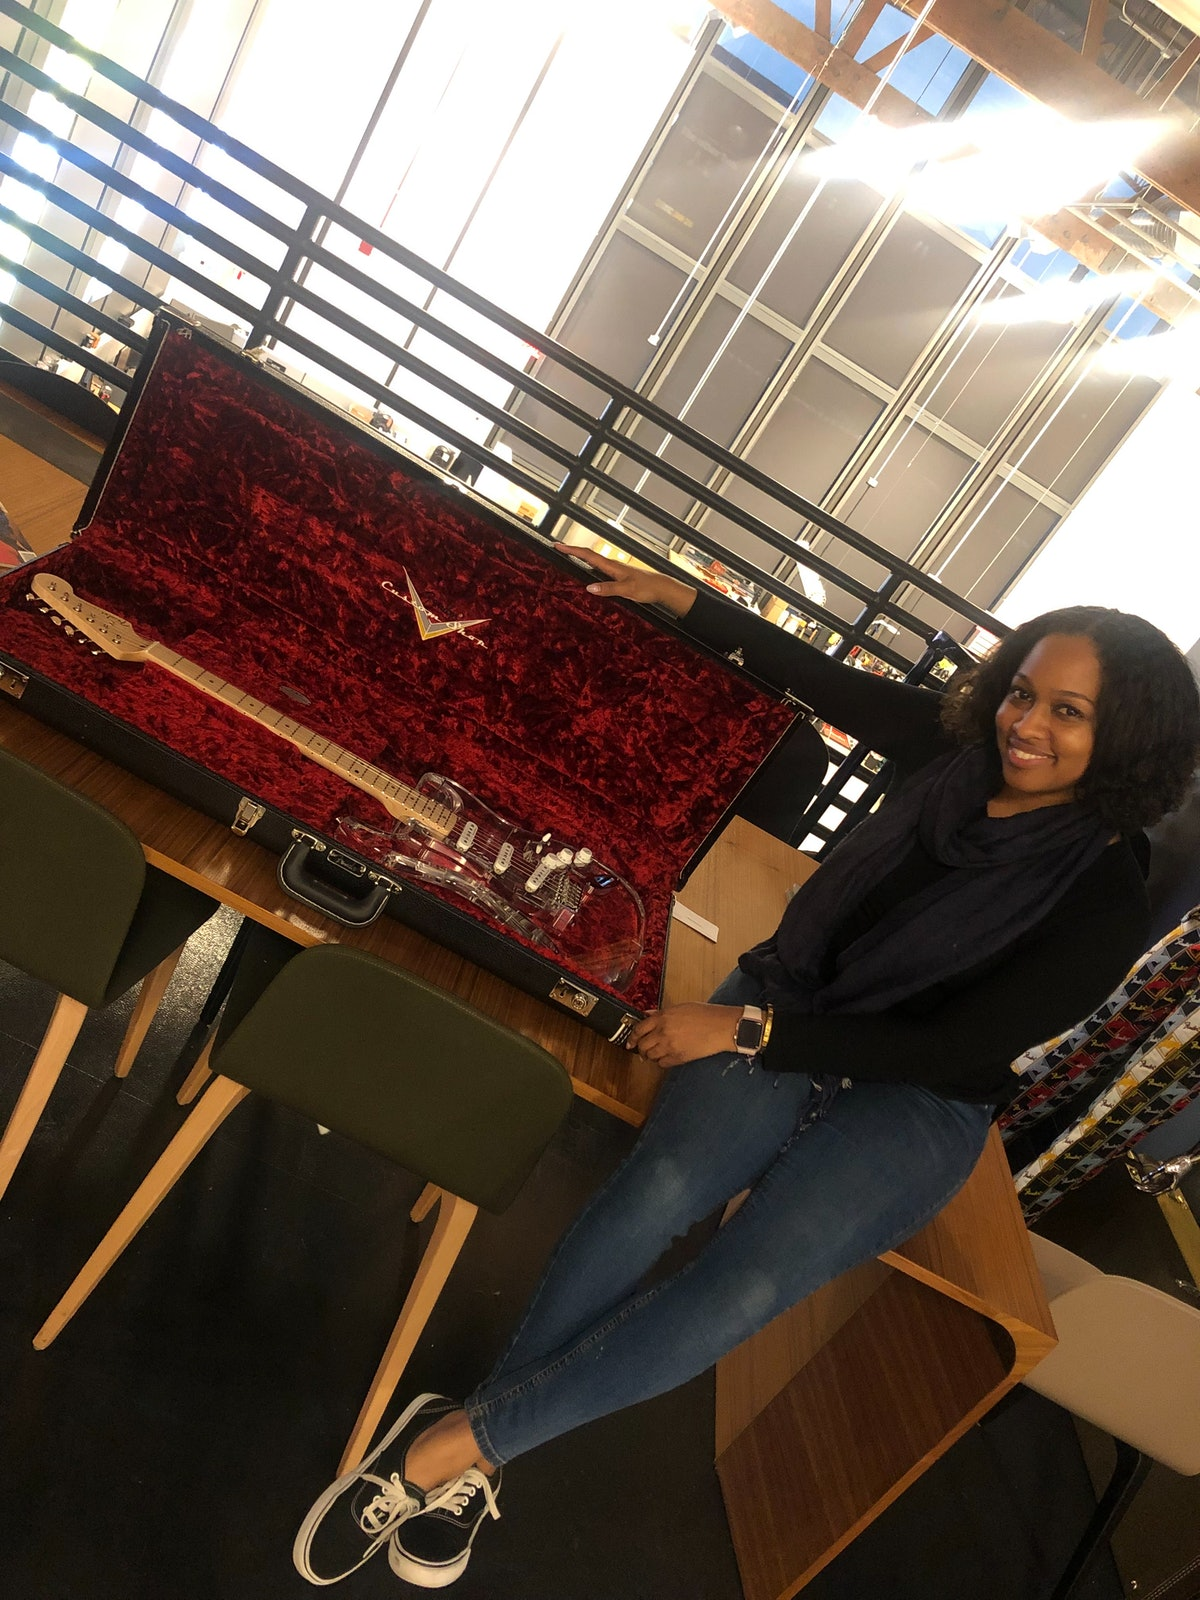 Moya Nkruma poses with a custom-made clear stratocaster guitar from Fender